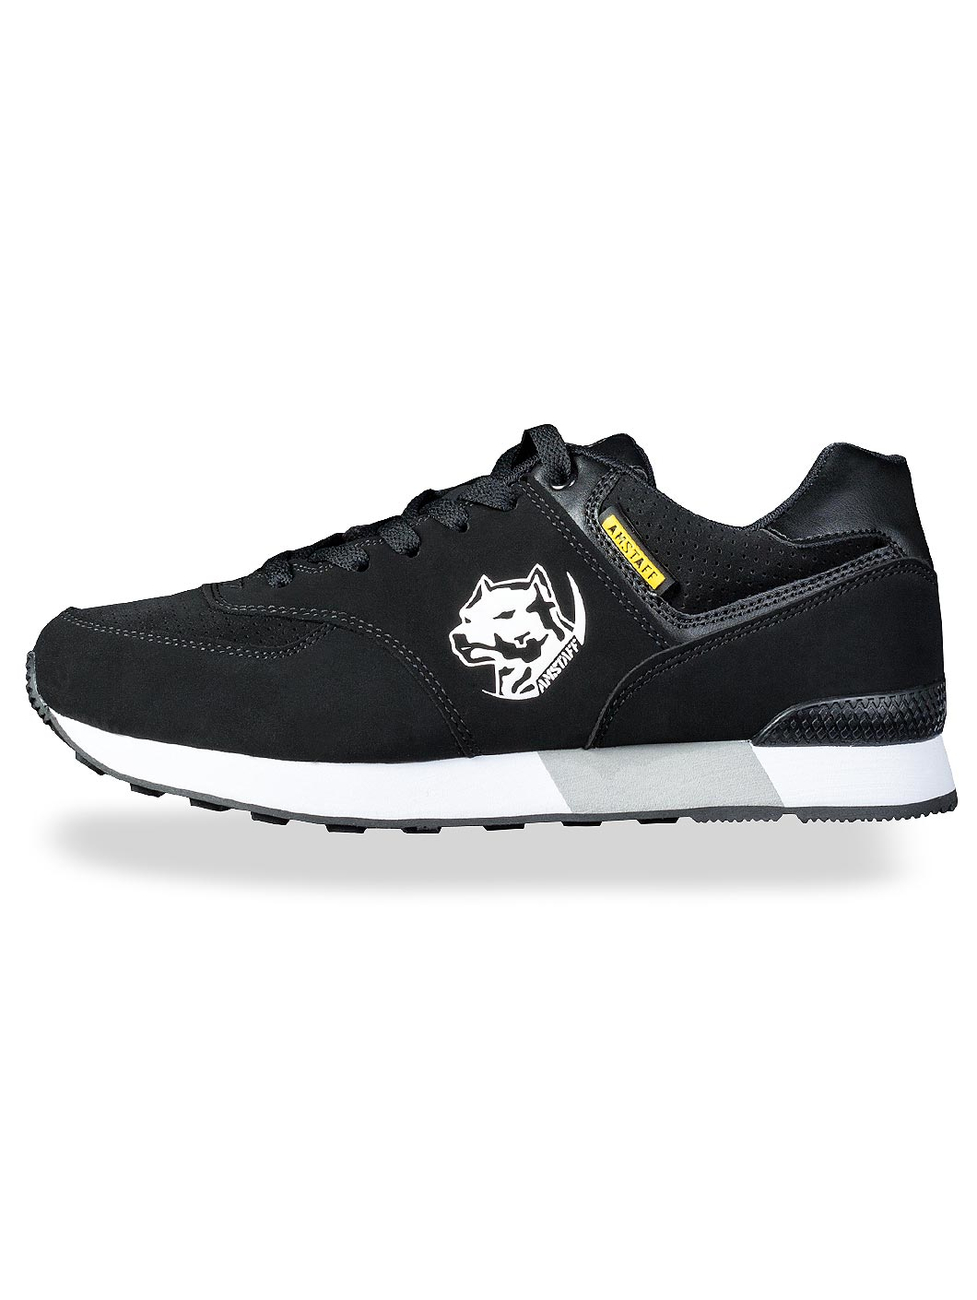 Amstaff Running Dog Sneakers Black